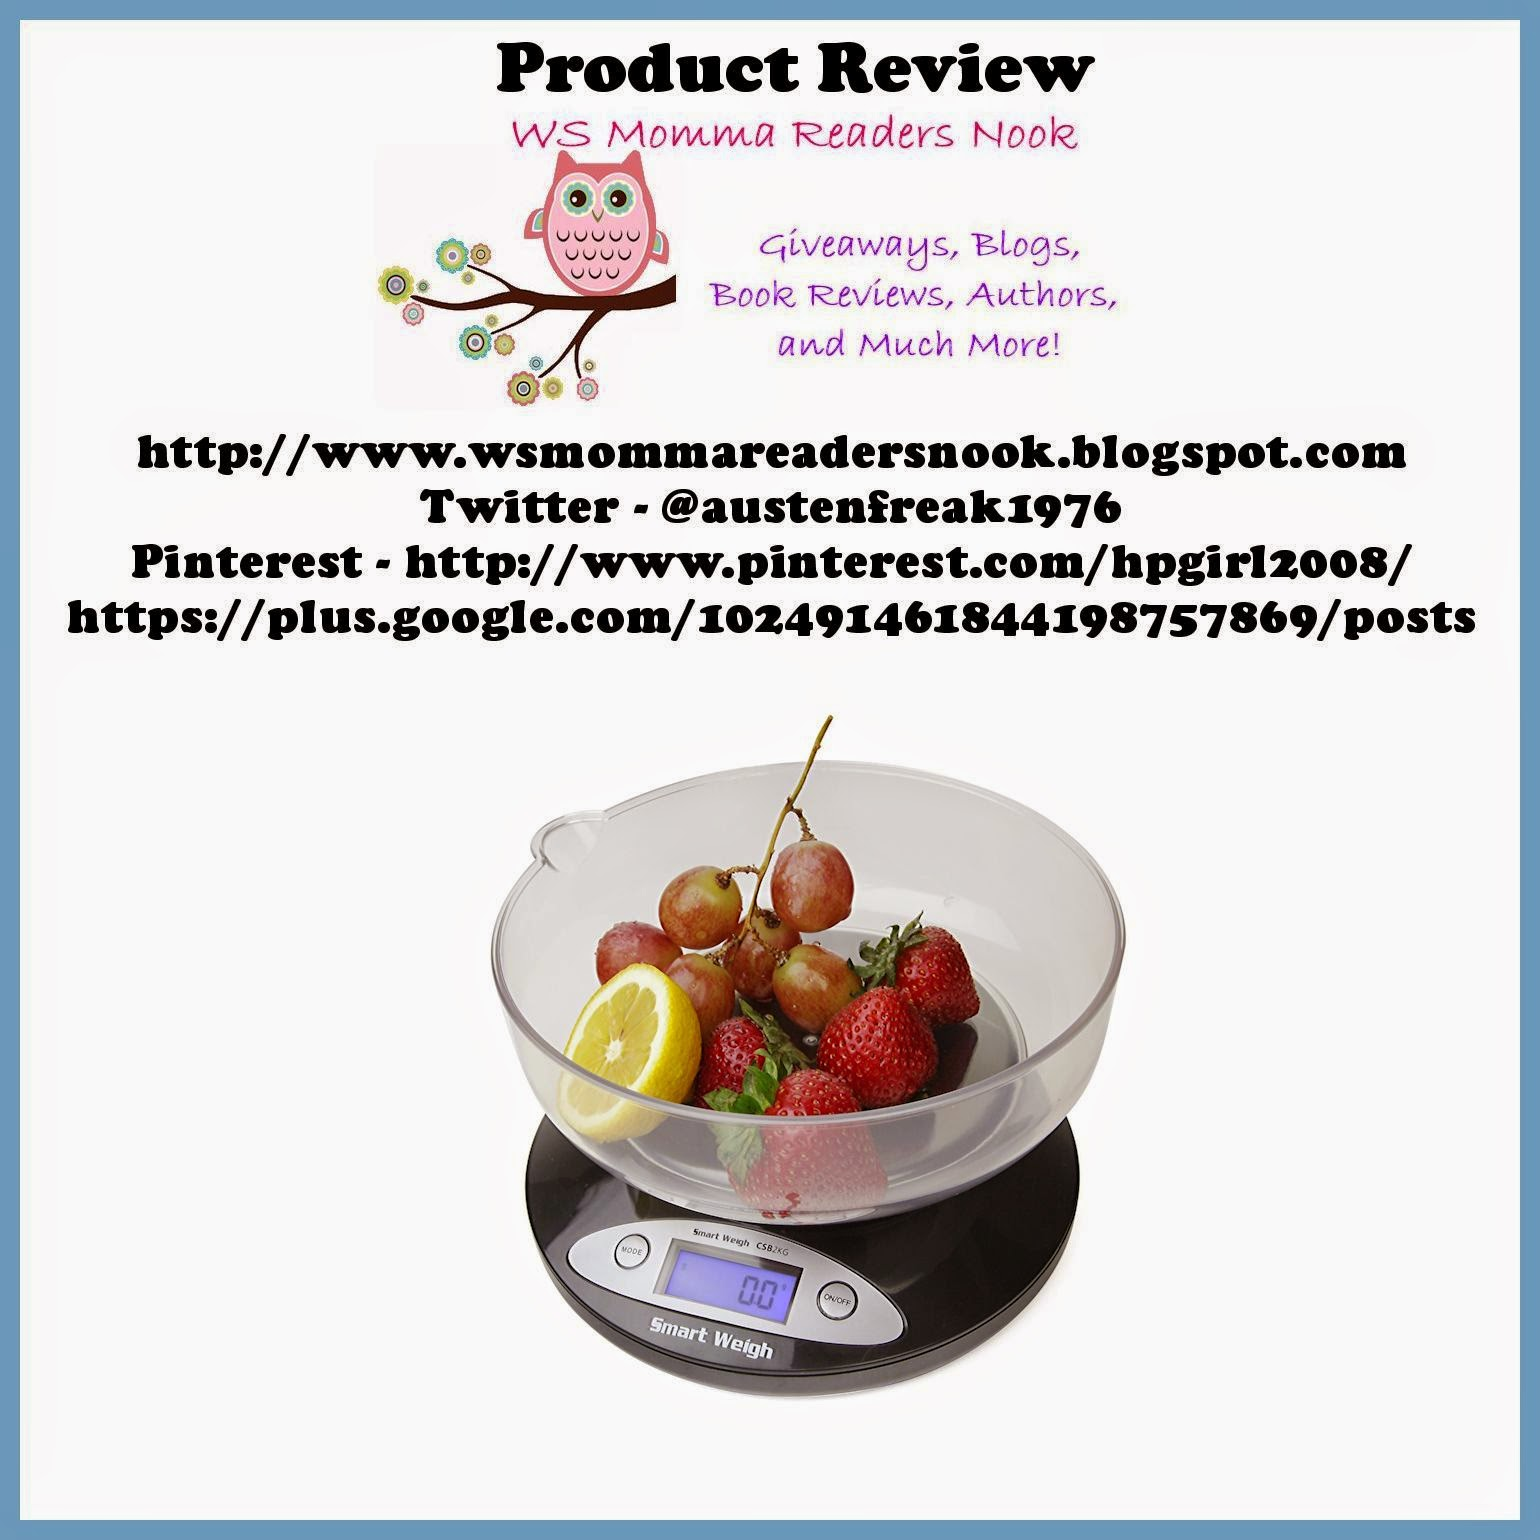 http://www.amazon.com/Smart-Weigh-CSB2KG-Cuisine-Removable/dp/B00EPPXRCE/ref=cm_rdp_product